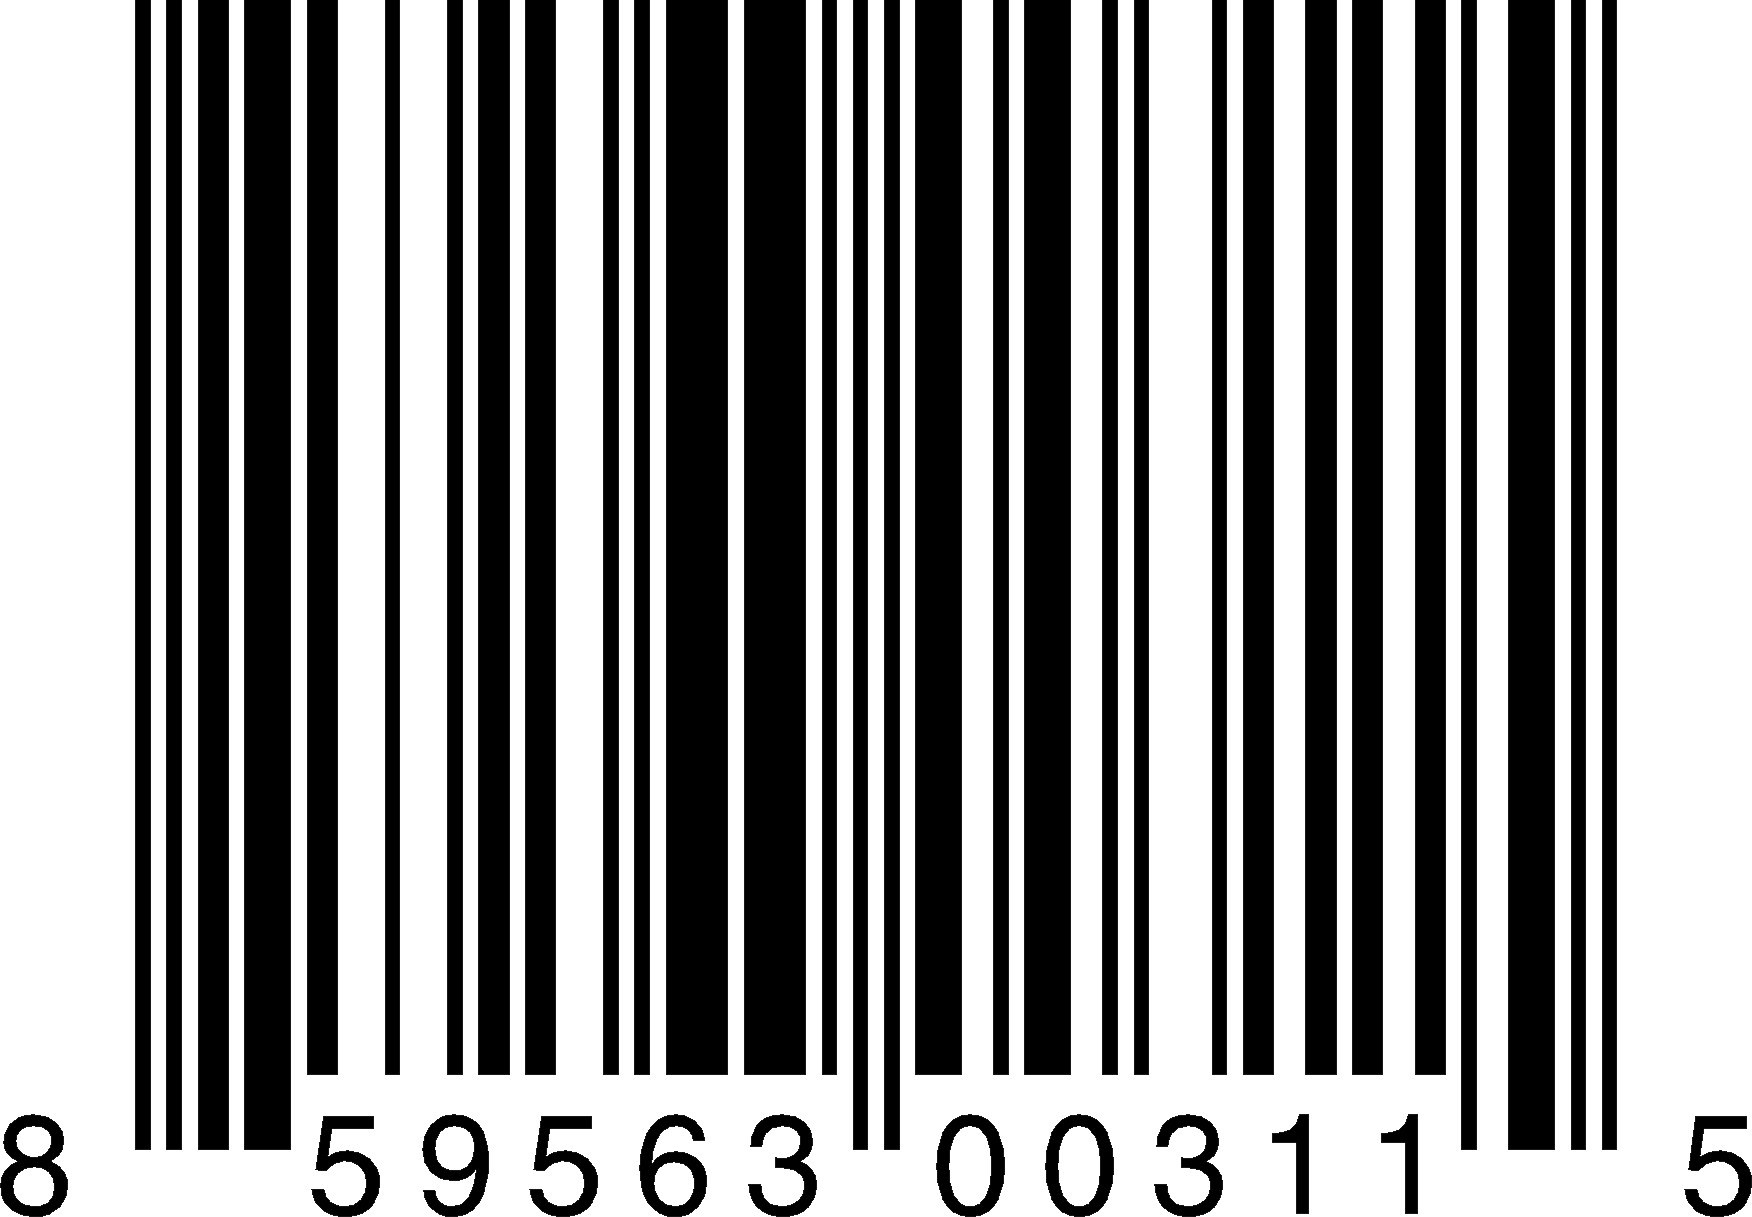 Bar Code Vector Transparent.